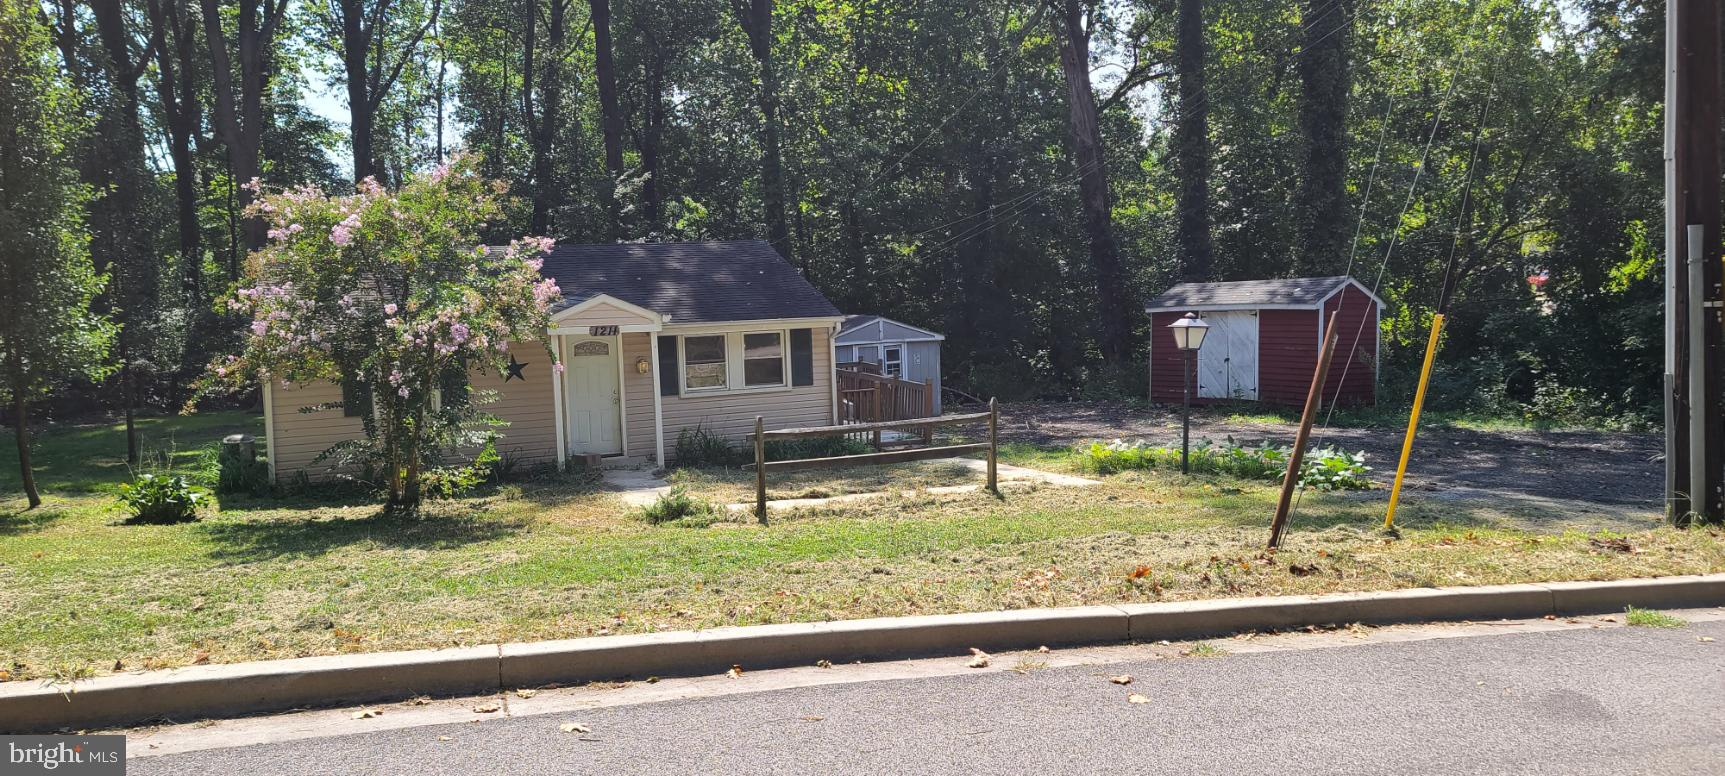 Unique 2 bedroom 1 bath home nestled along Generals Hwy, Minutes from Annapolis, National Harbor, Ba